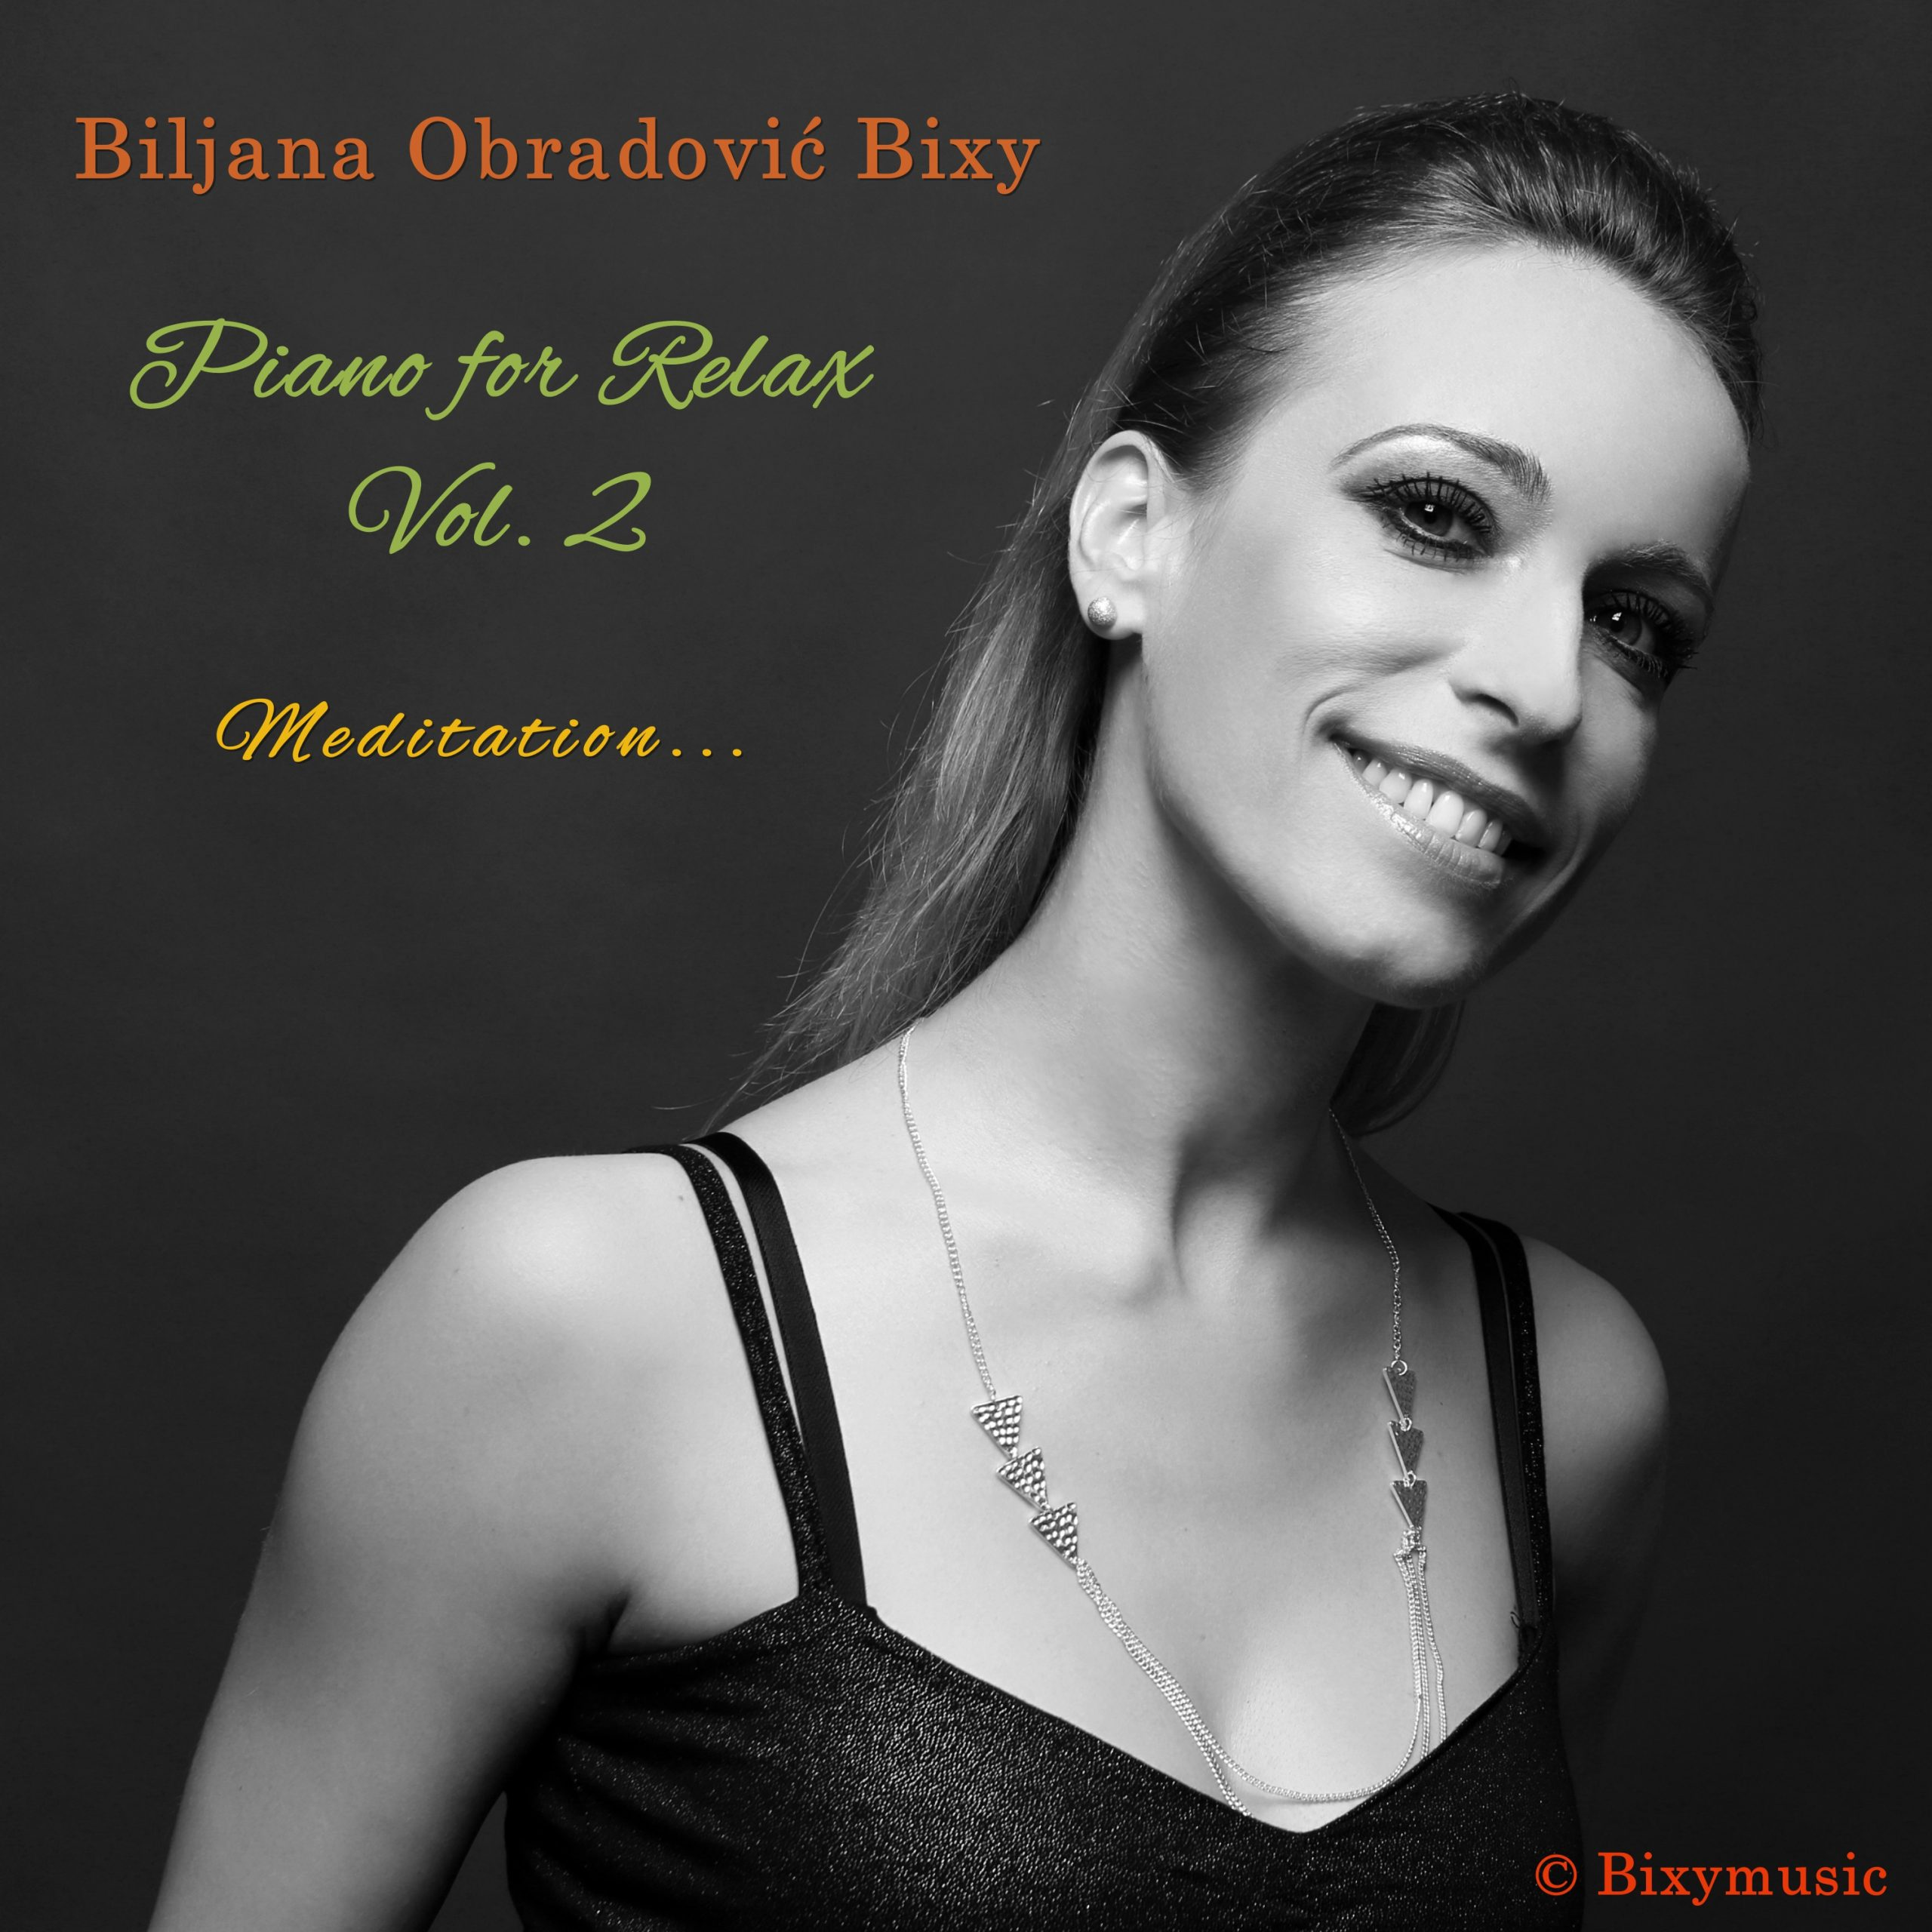 Biljana Obradović Bixy - Piano for Relax Vol.2 (Meditation)